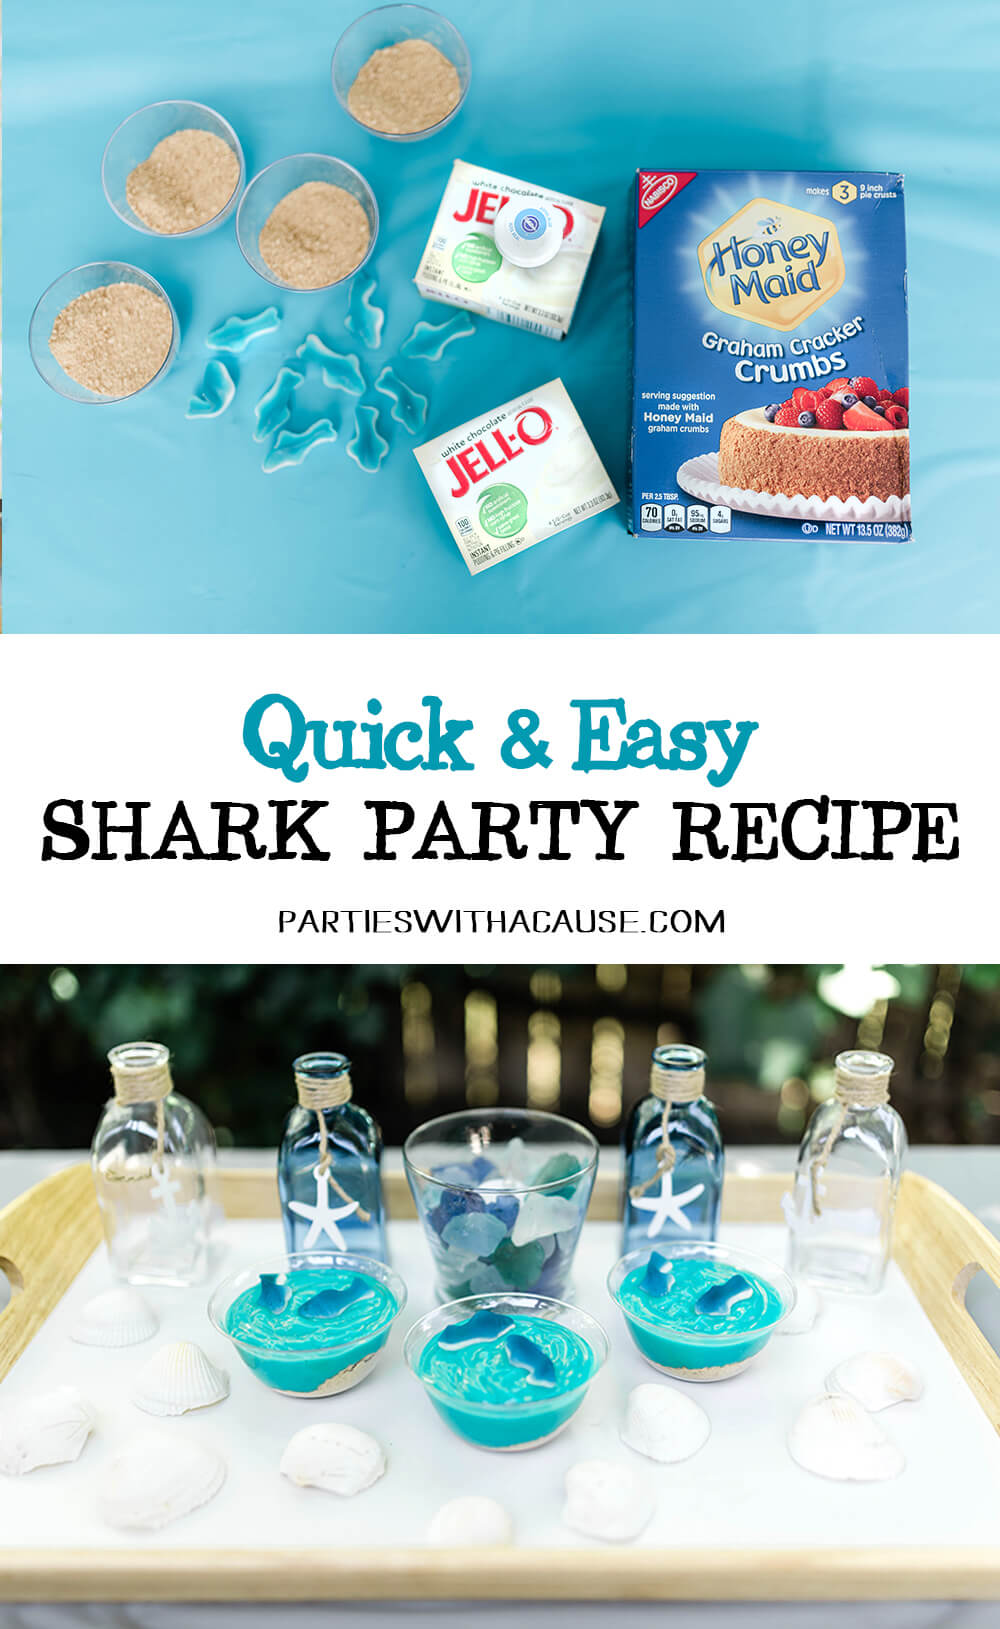 Quick & easy recipe for Shark pudding cup